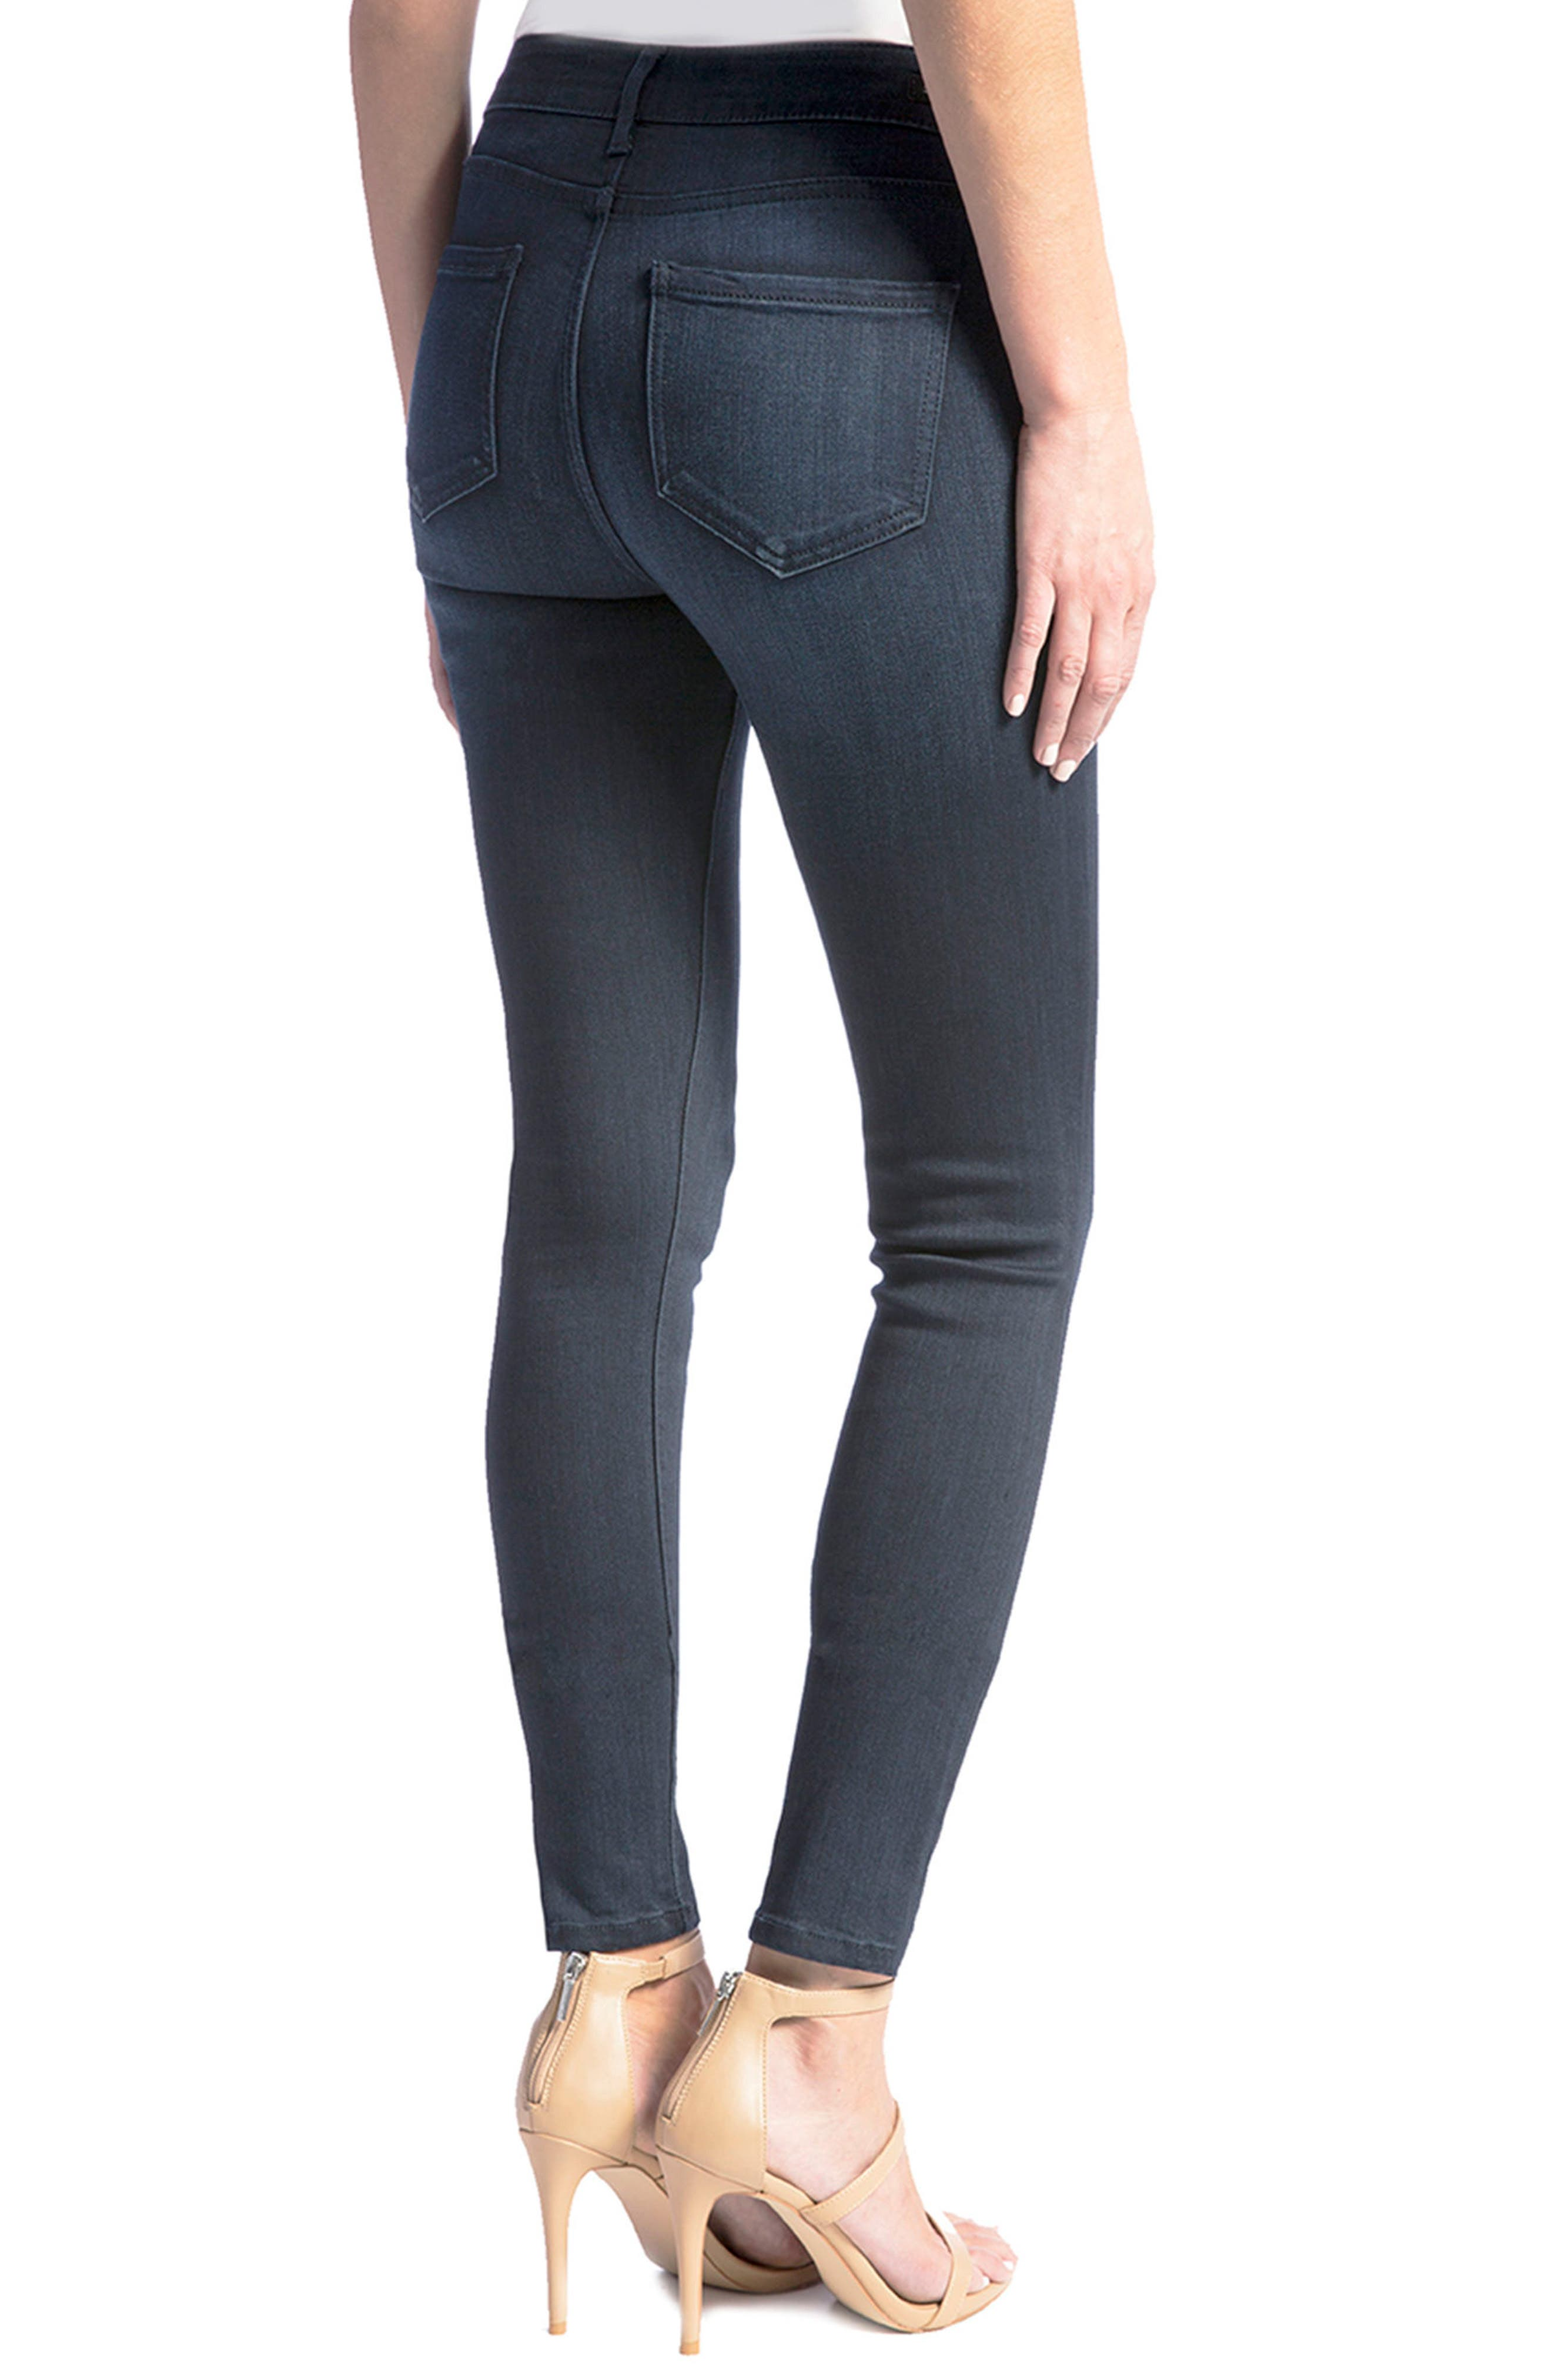 Jeans Co. Abby Stretch Skinny Jeans,                             Alternate thumbnail 2, color,                             Stone Wash